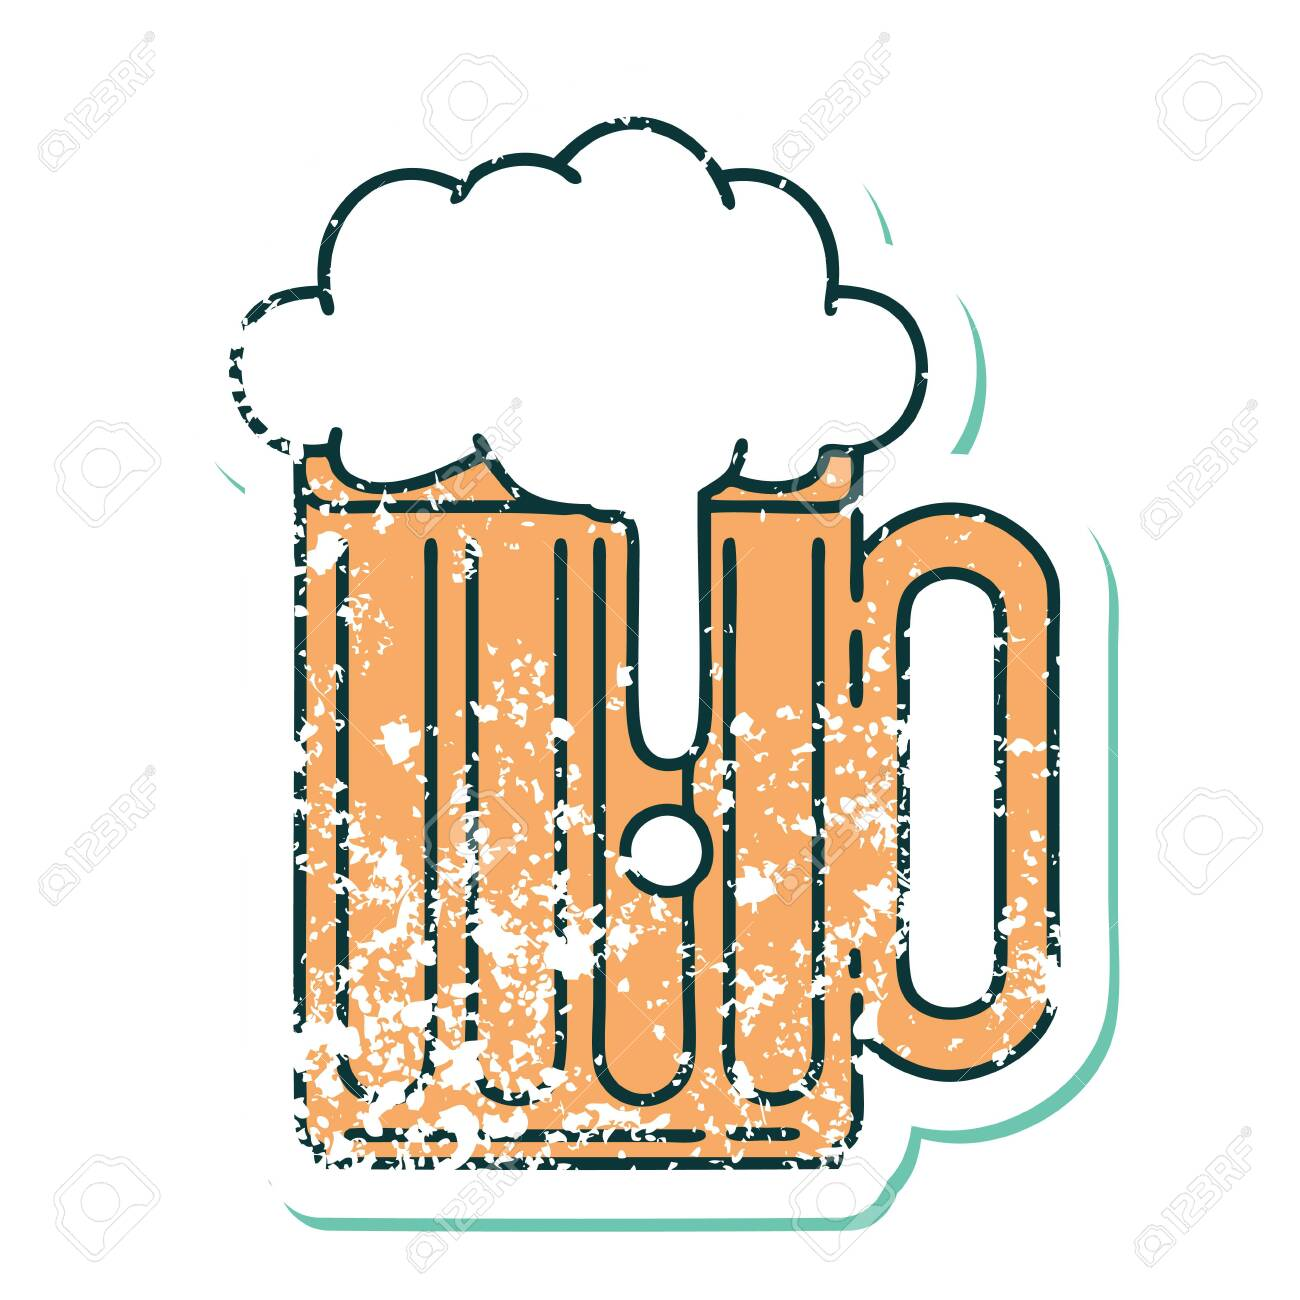 Iconic Distressed Sticker Tattoo Style Image Of A Beer Tankard Royalty Free Cliparts Vectors And Stock Illustration Image 145638708